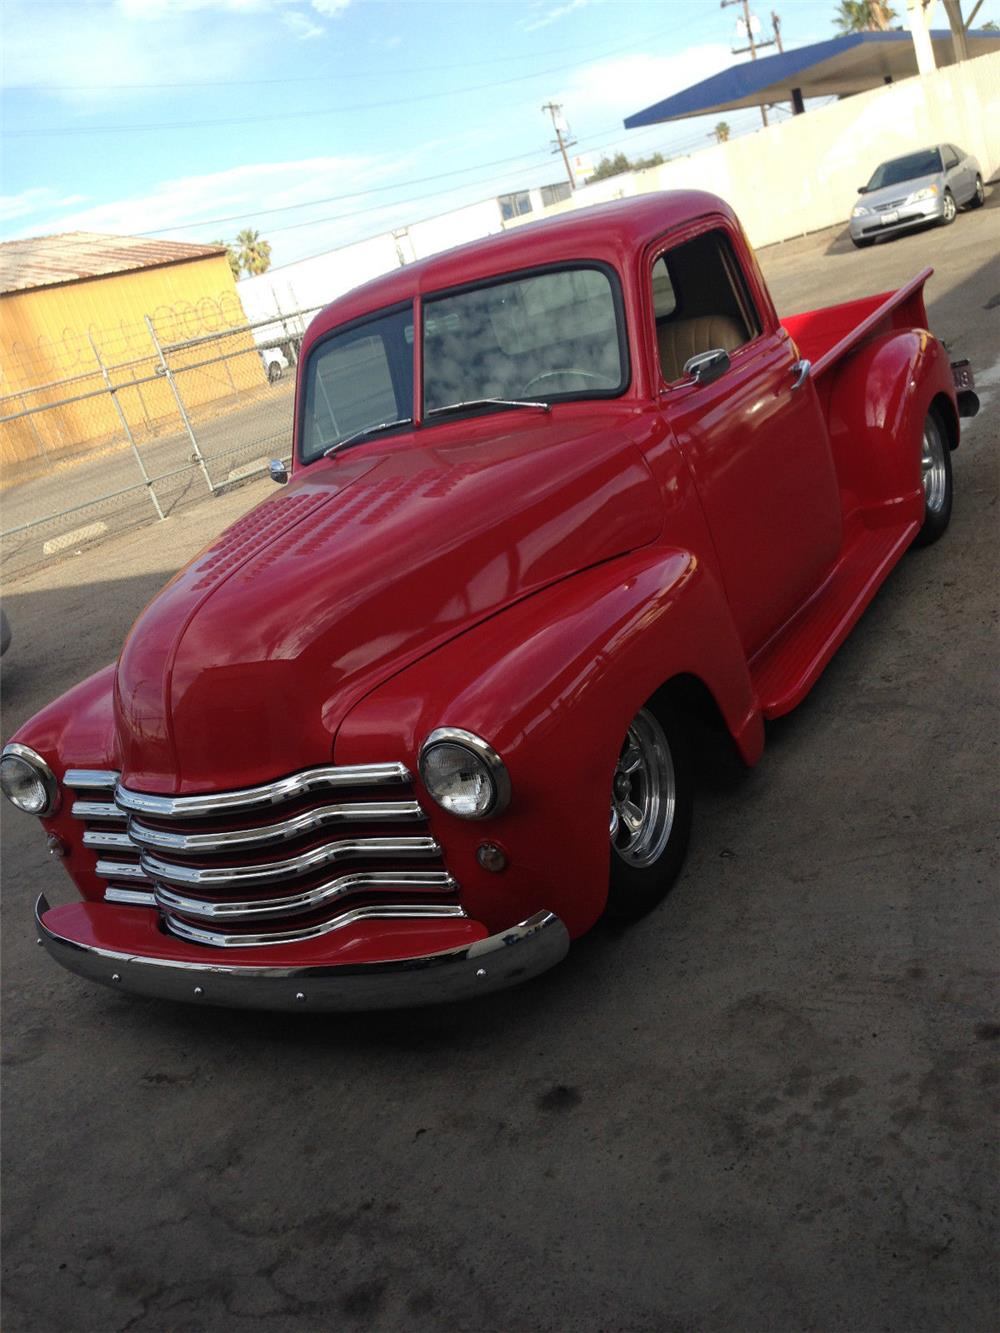 1953 GMC CUSTOM PICKUP - Misc 1 - 180817